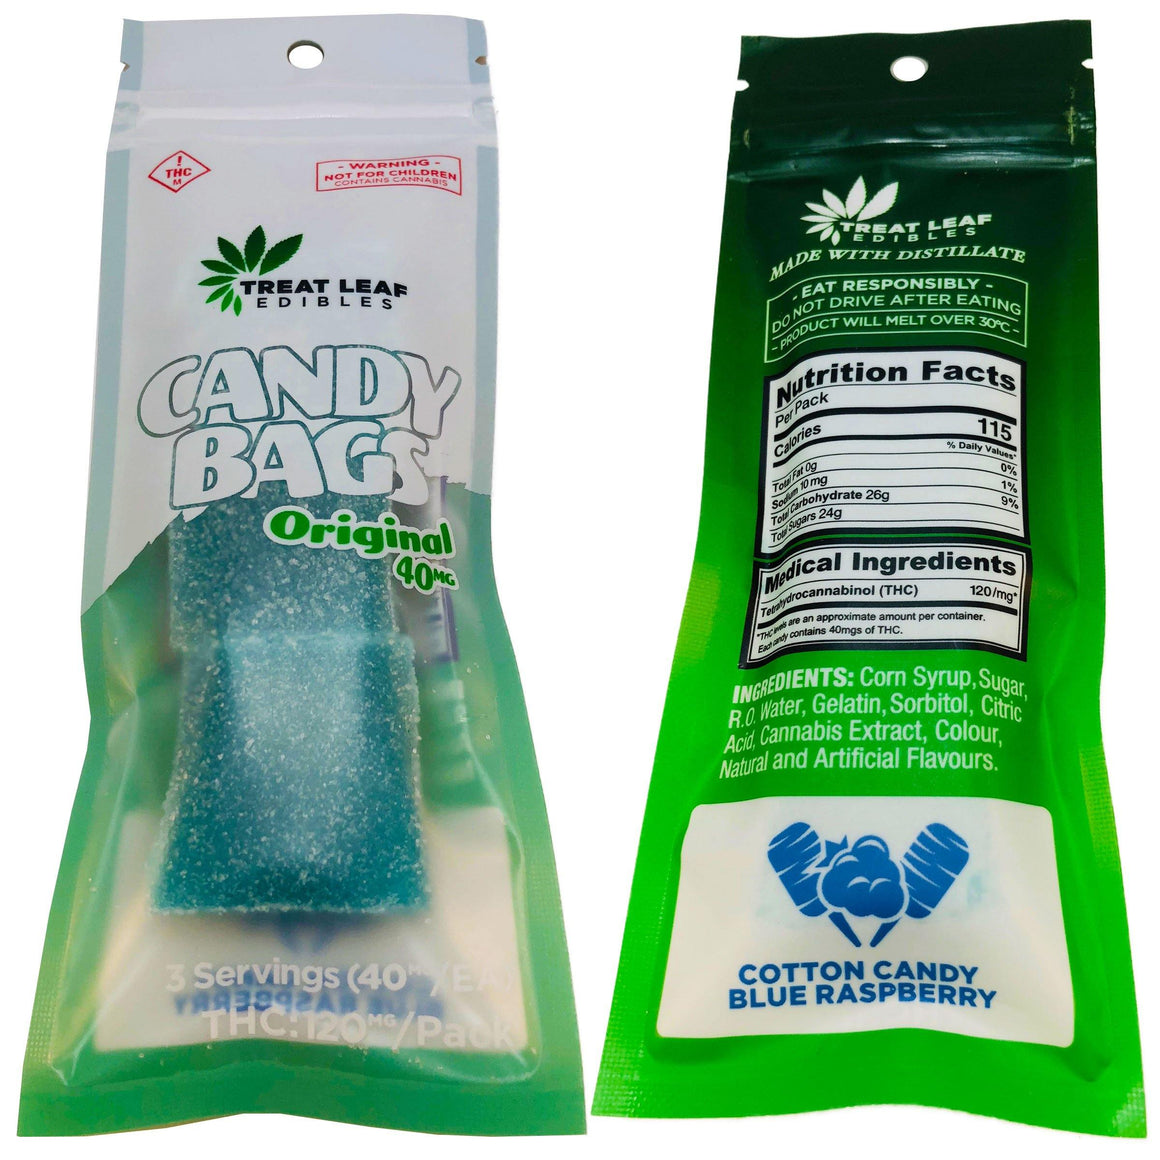 Treat Leaf Edibles Candy Bags